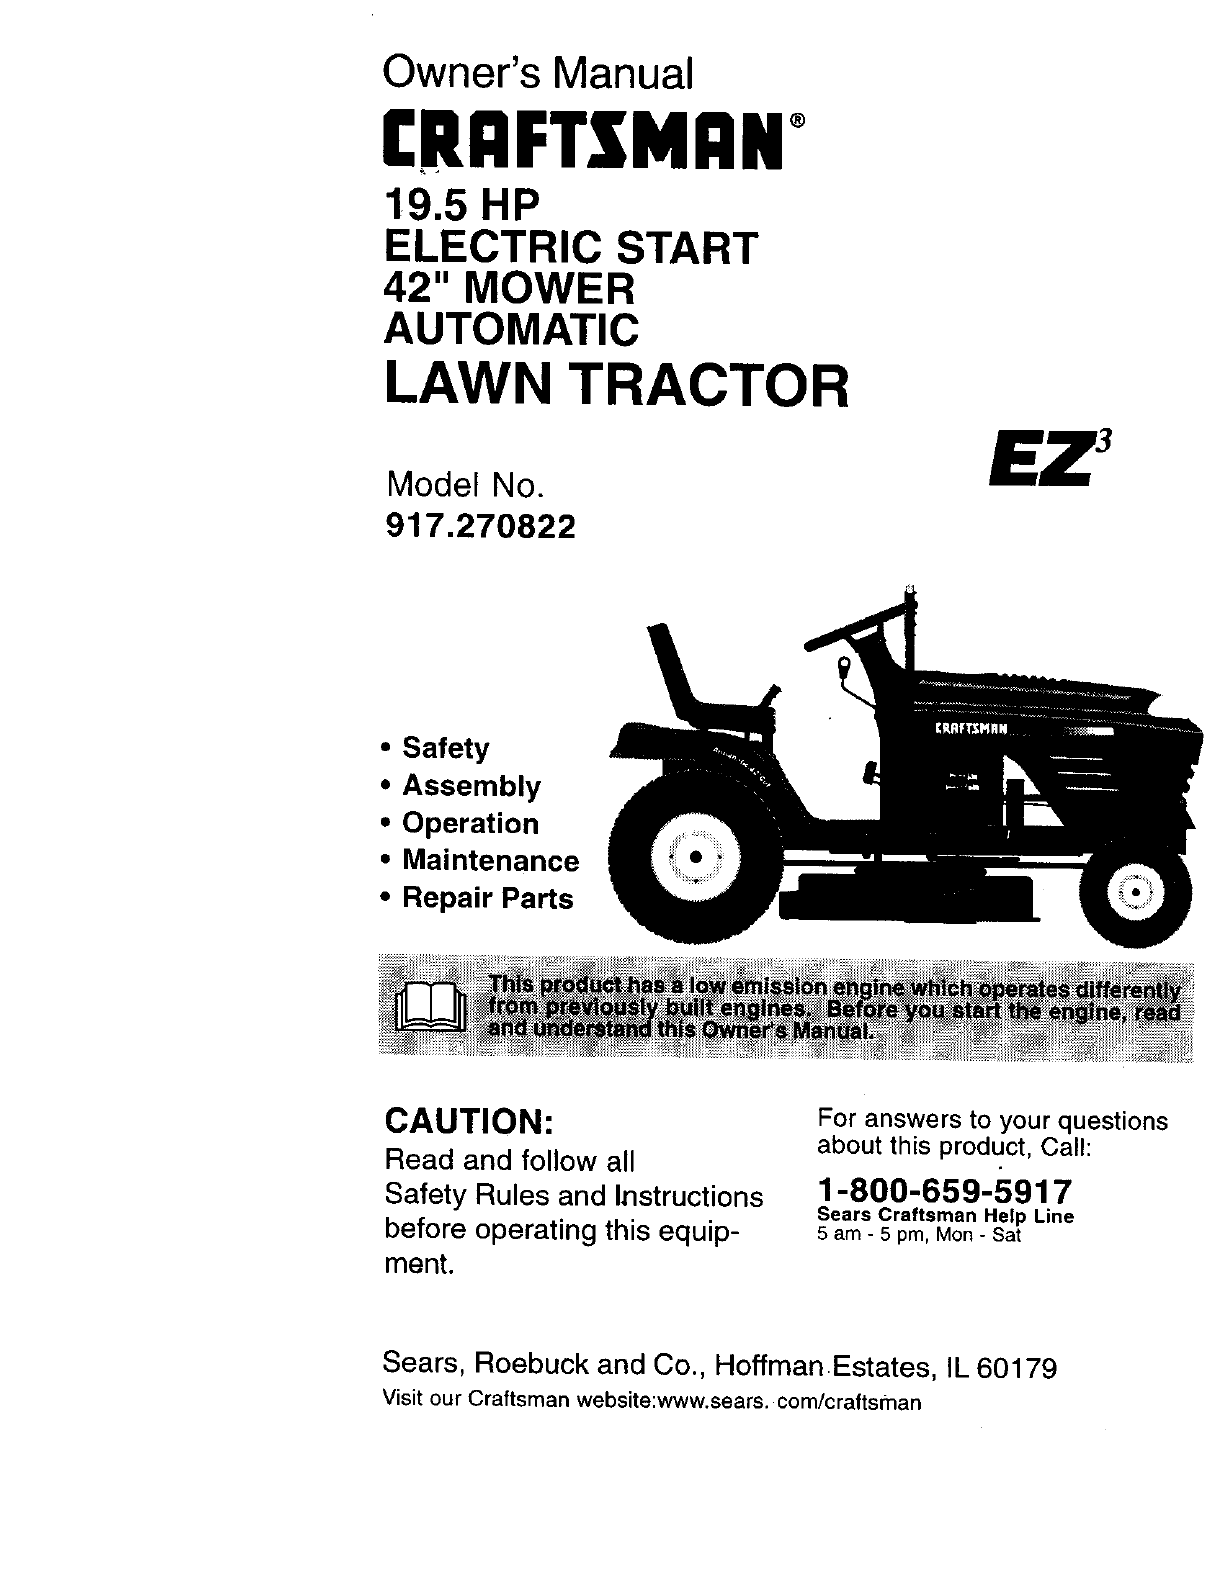 Craftsman Lt1000 Mower Manual : Craftsman lawn mower lt riding manuals user